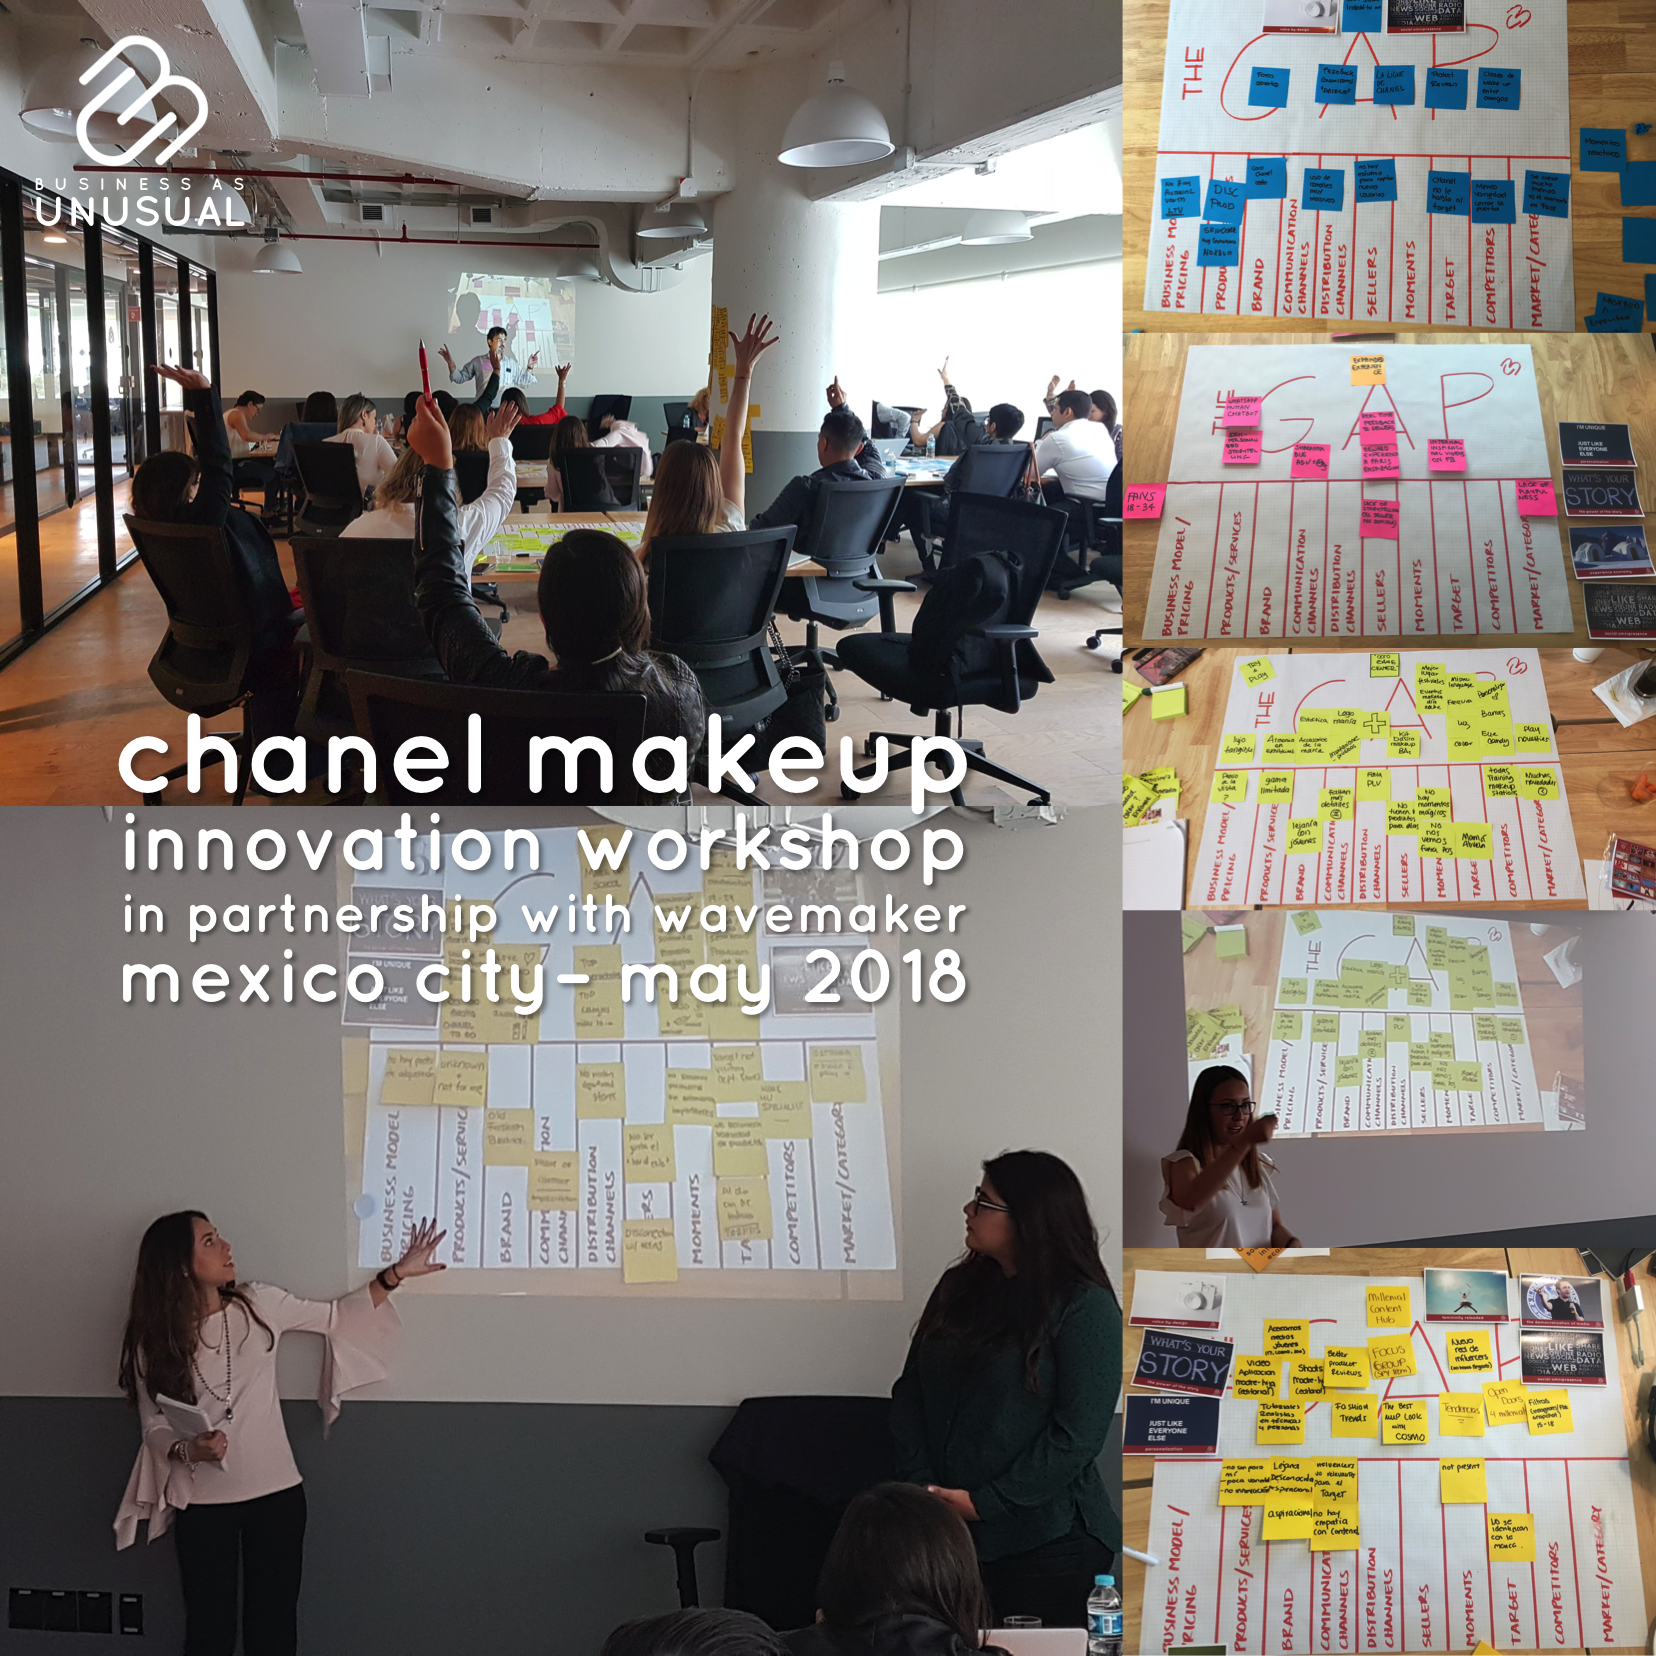 CHANEL MakeUp - Ideation, Innovation, Problem-Solving & Marketing Plan